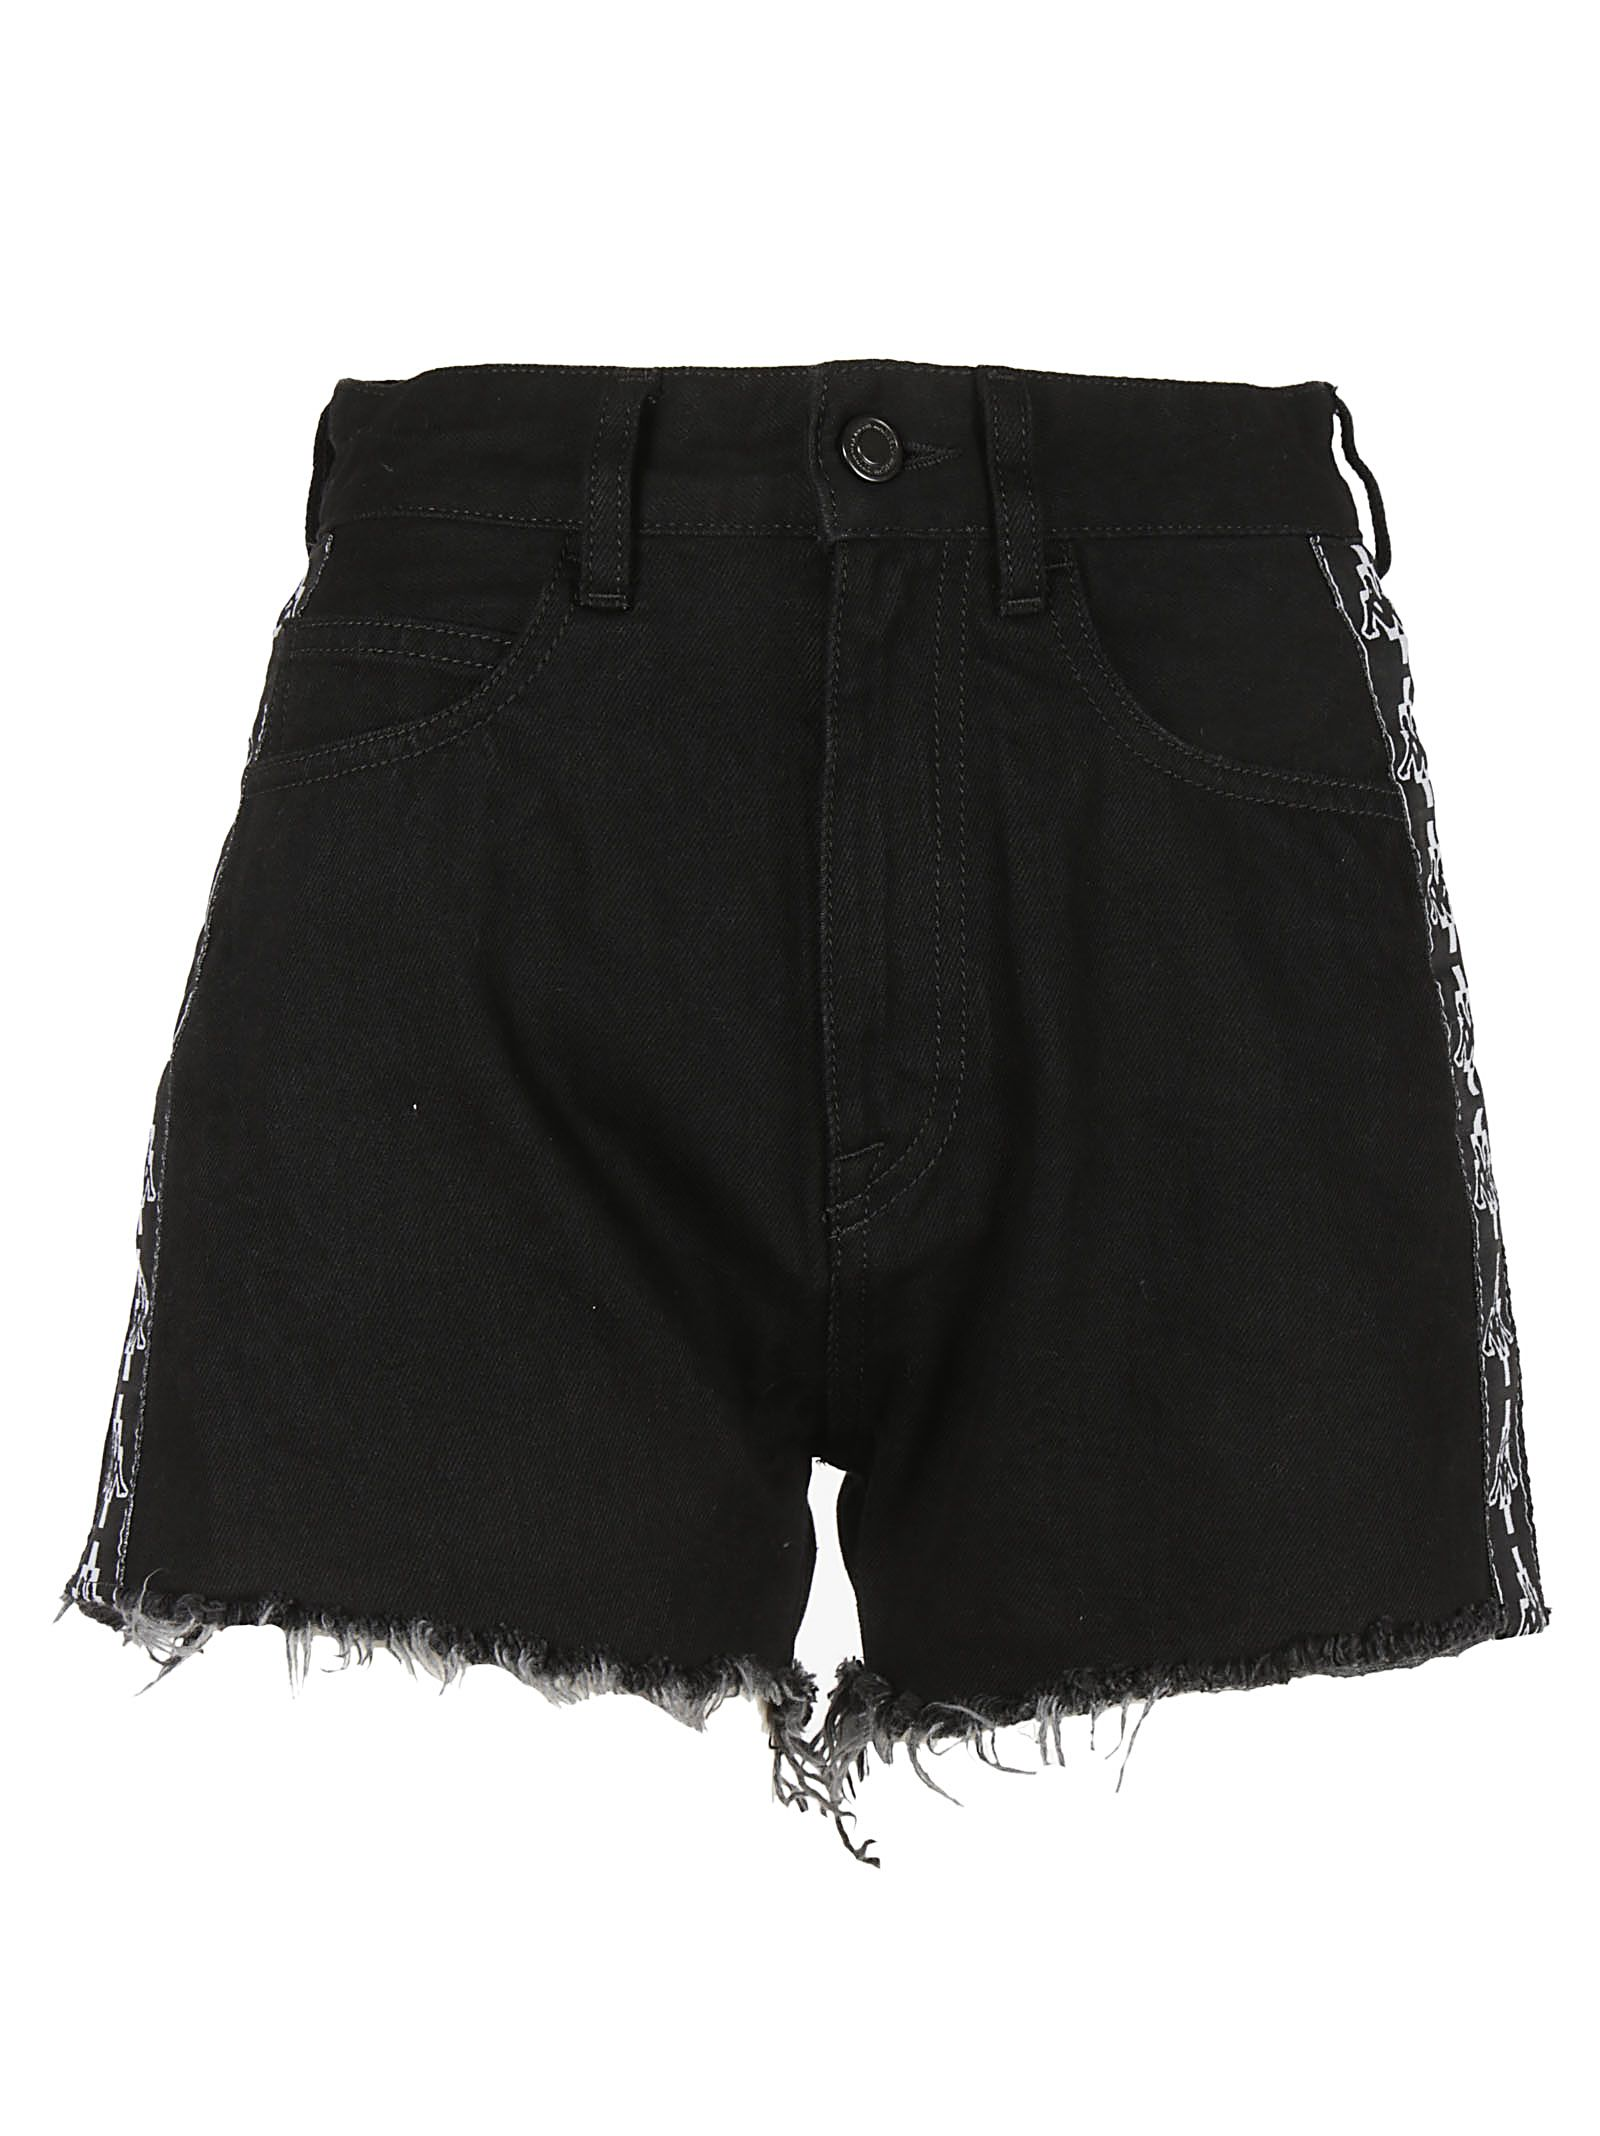 Marcelo Burlon Fringed Shorts